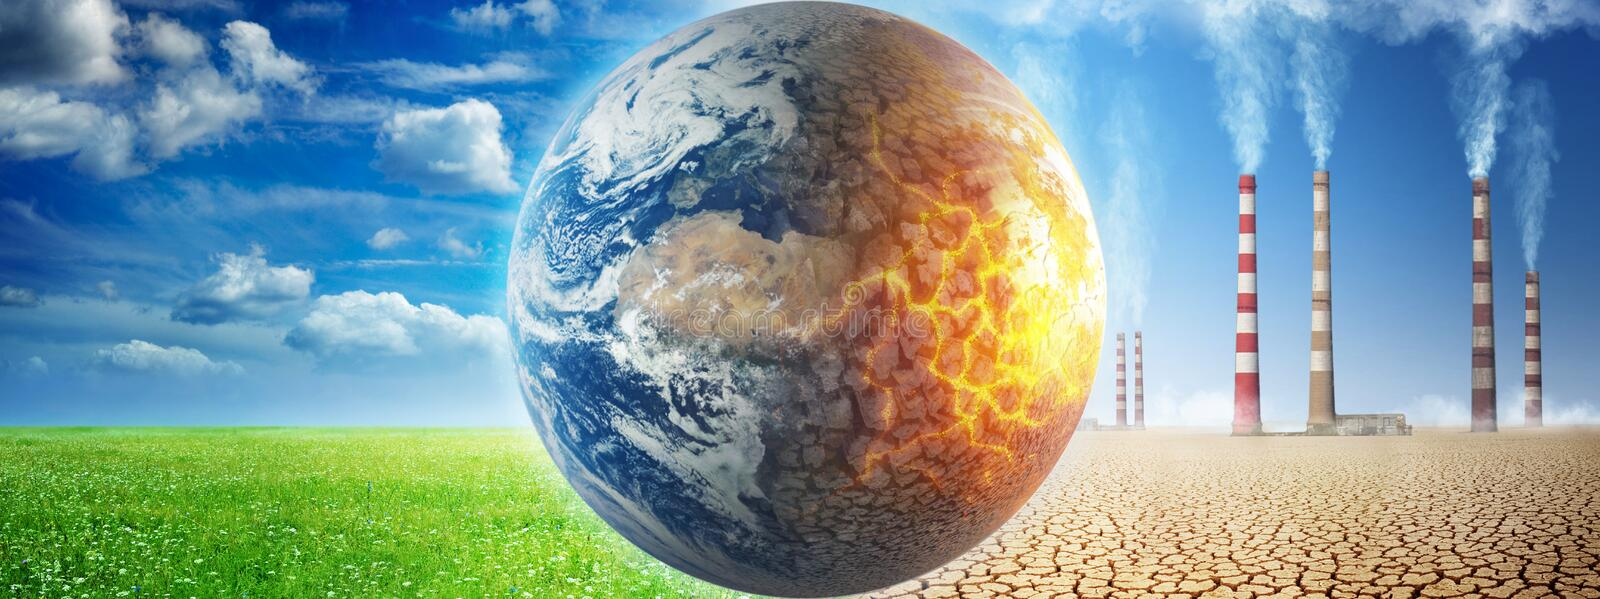 Earth on a background of grass and clouds versus a ruined Earth on a background of a dead desert with Smoking chimneys of royalty free stock photography